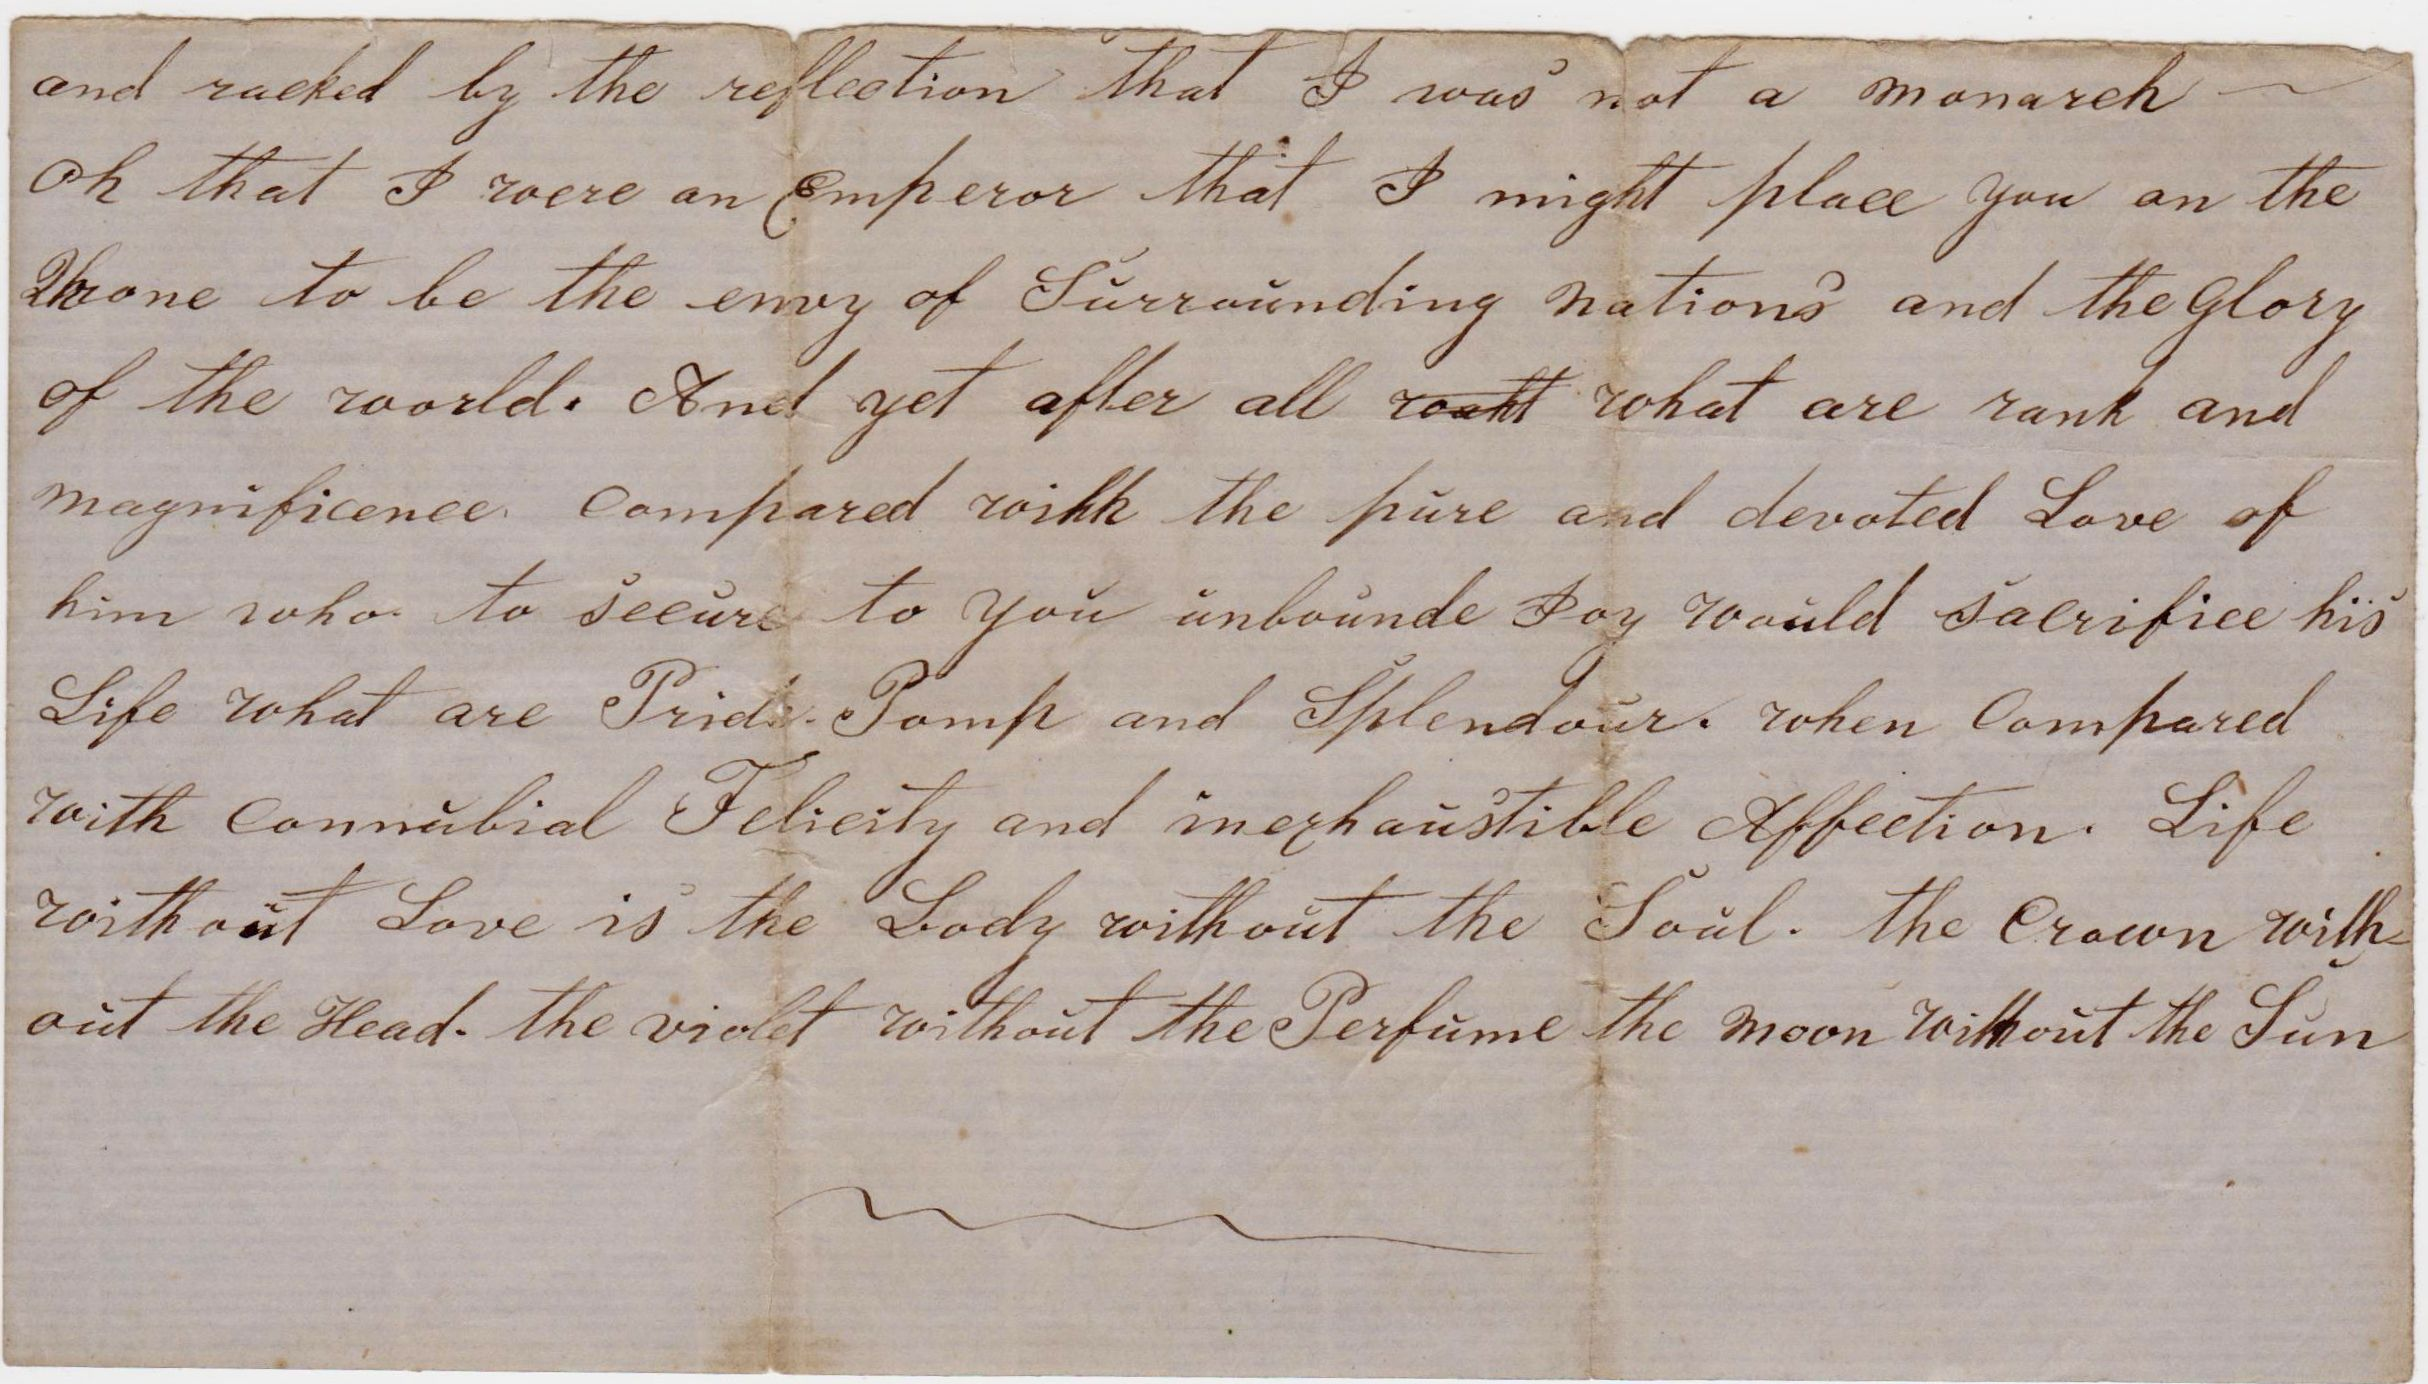 1a Love letter from husband Peter. Dear Mary Anne Larsen , dated 18 August, 1872. bottom of page 1.